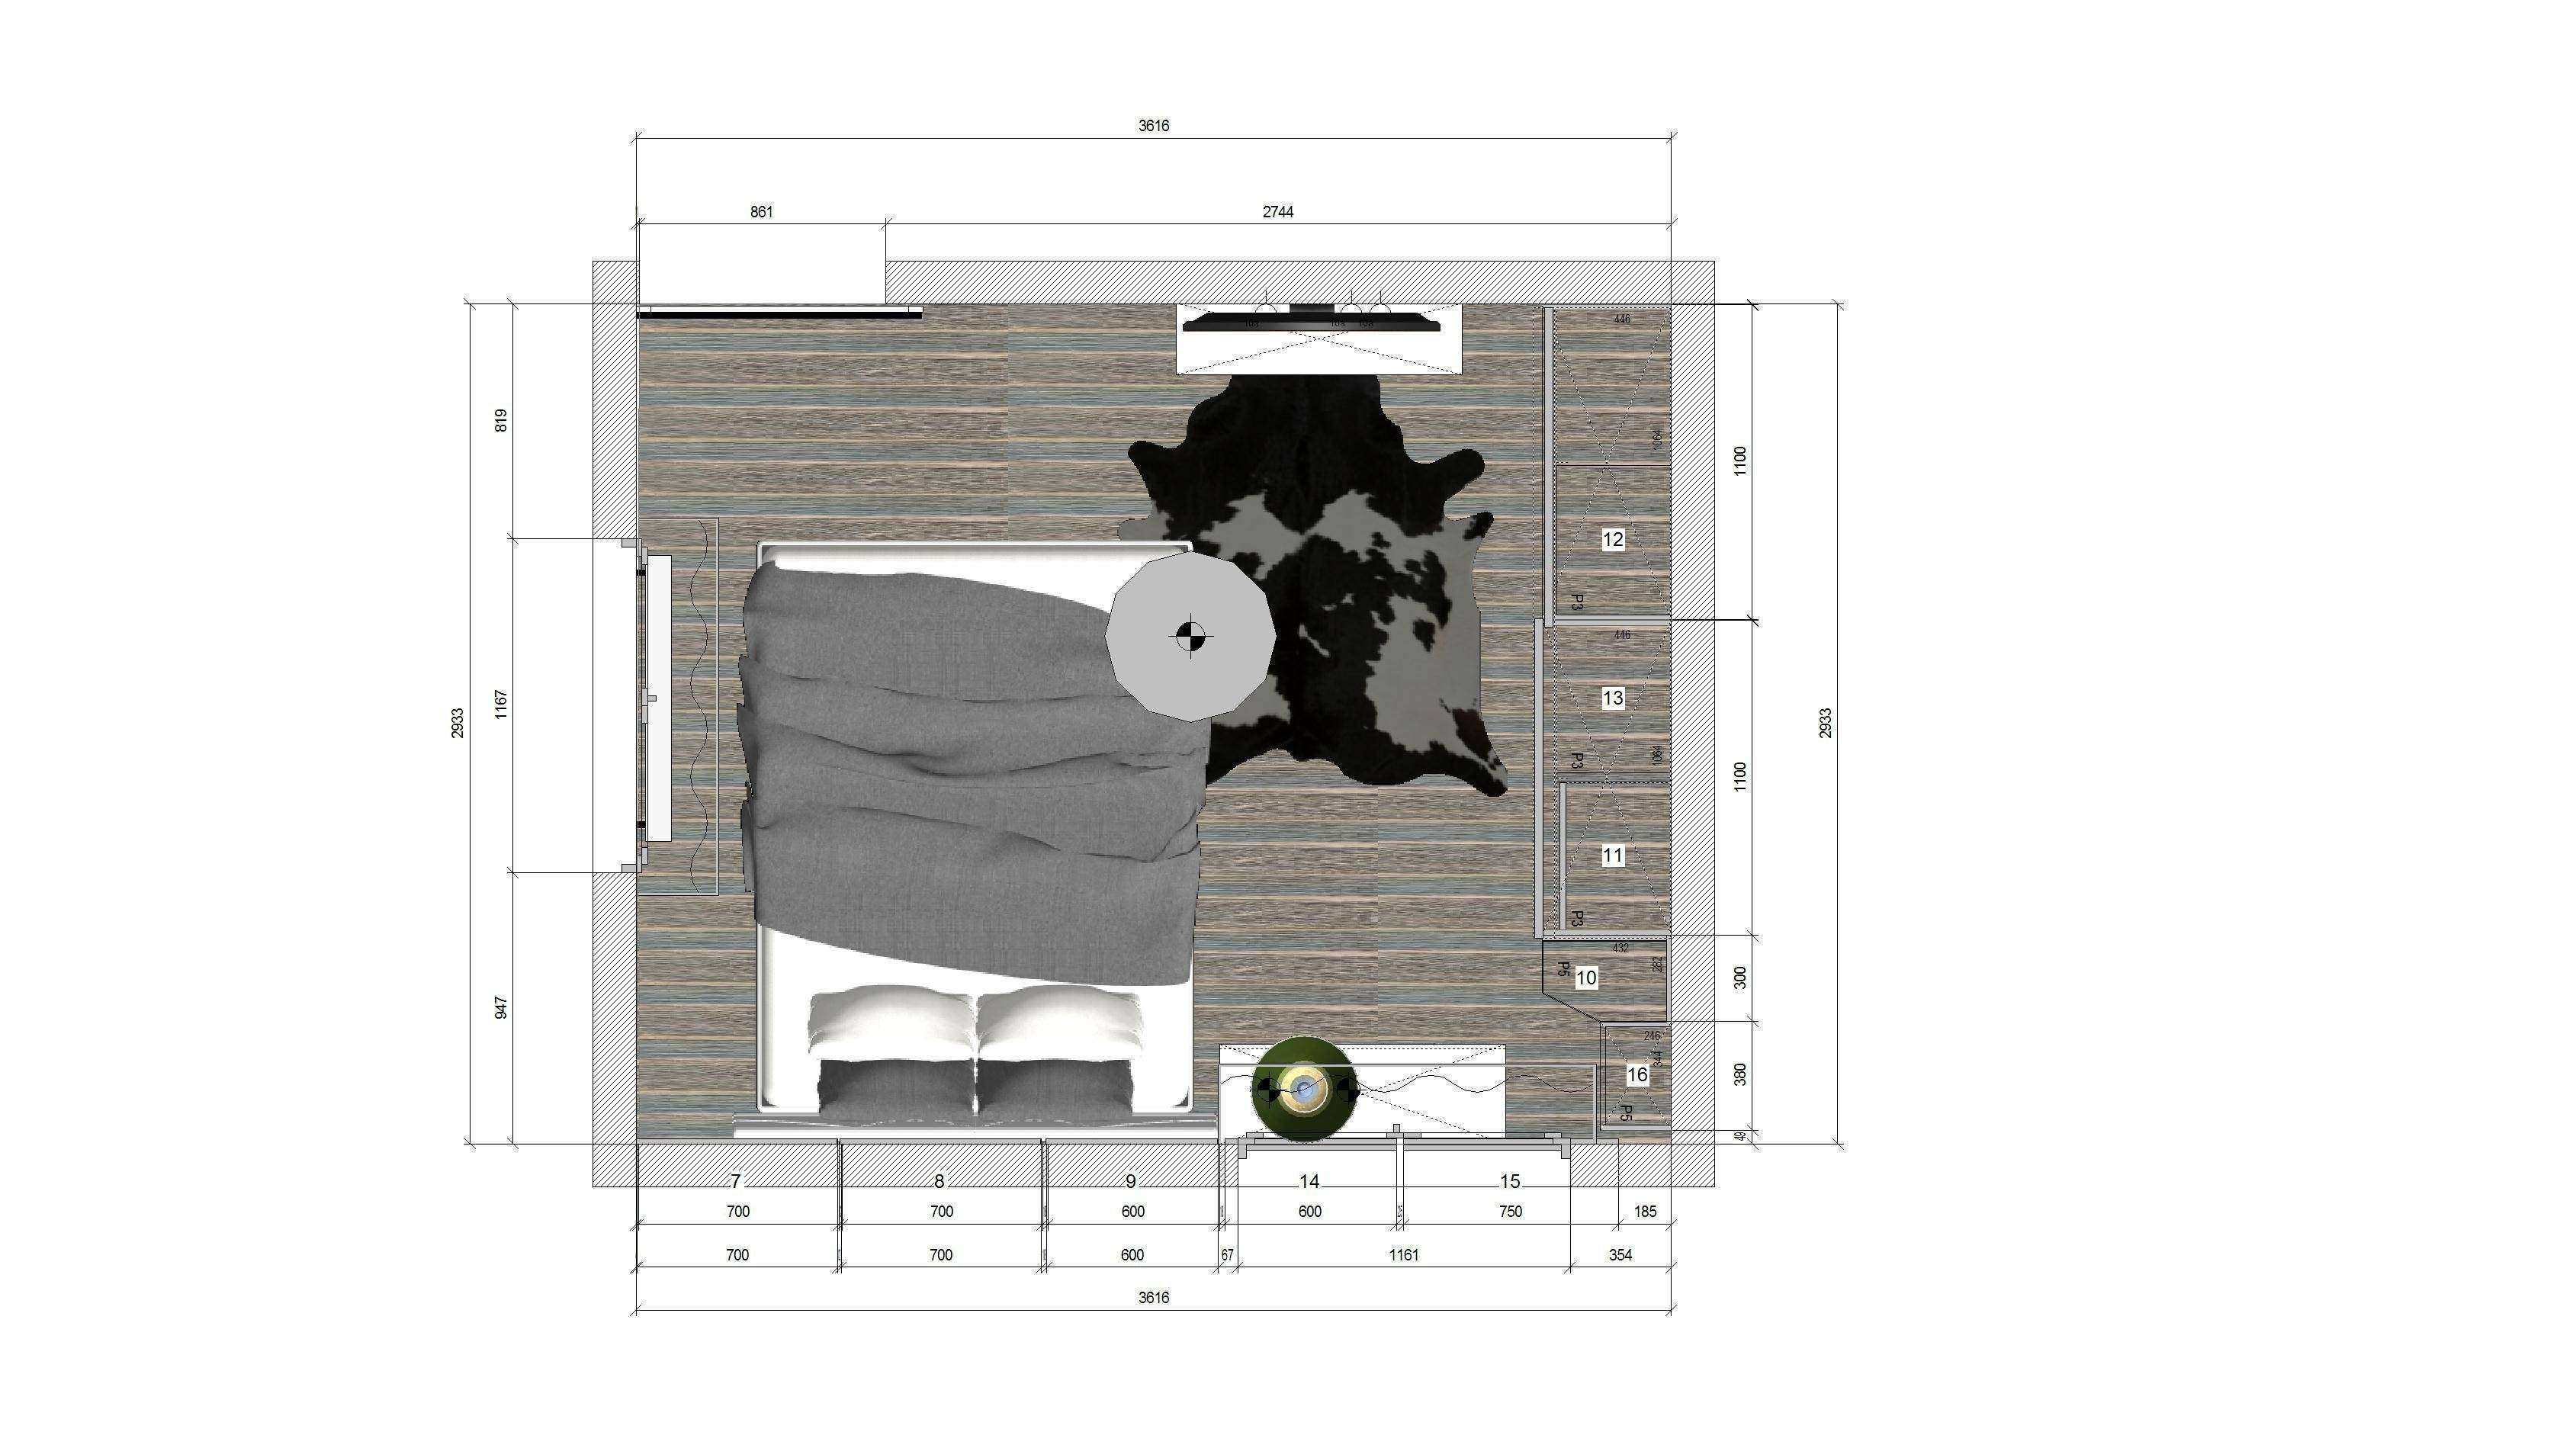 <a href=&quot;Plan design interior dormitor , detalii de amplasament&quot;>plan amenajare dormitor <img src='http://www.unican.ro/wp-content/themes/vita/img/dreapta.png' class='pull-right hidden-xs' style='margin-right:-10px;margin-top:-10px; max-height:41px'></a>